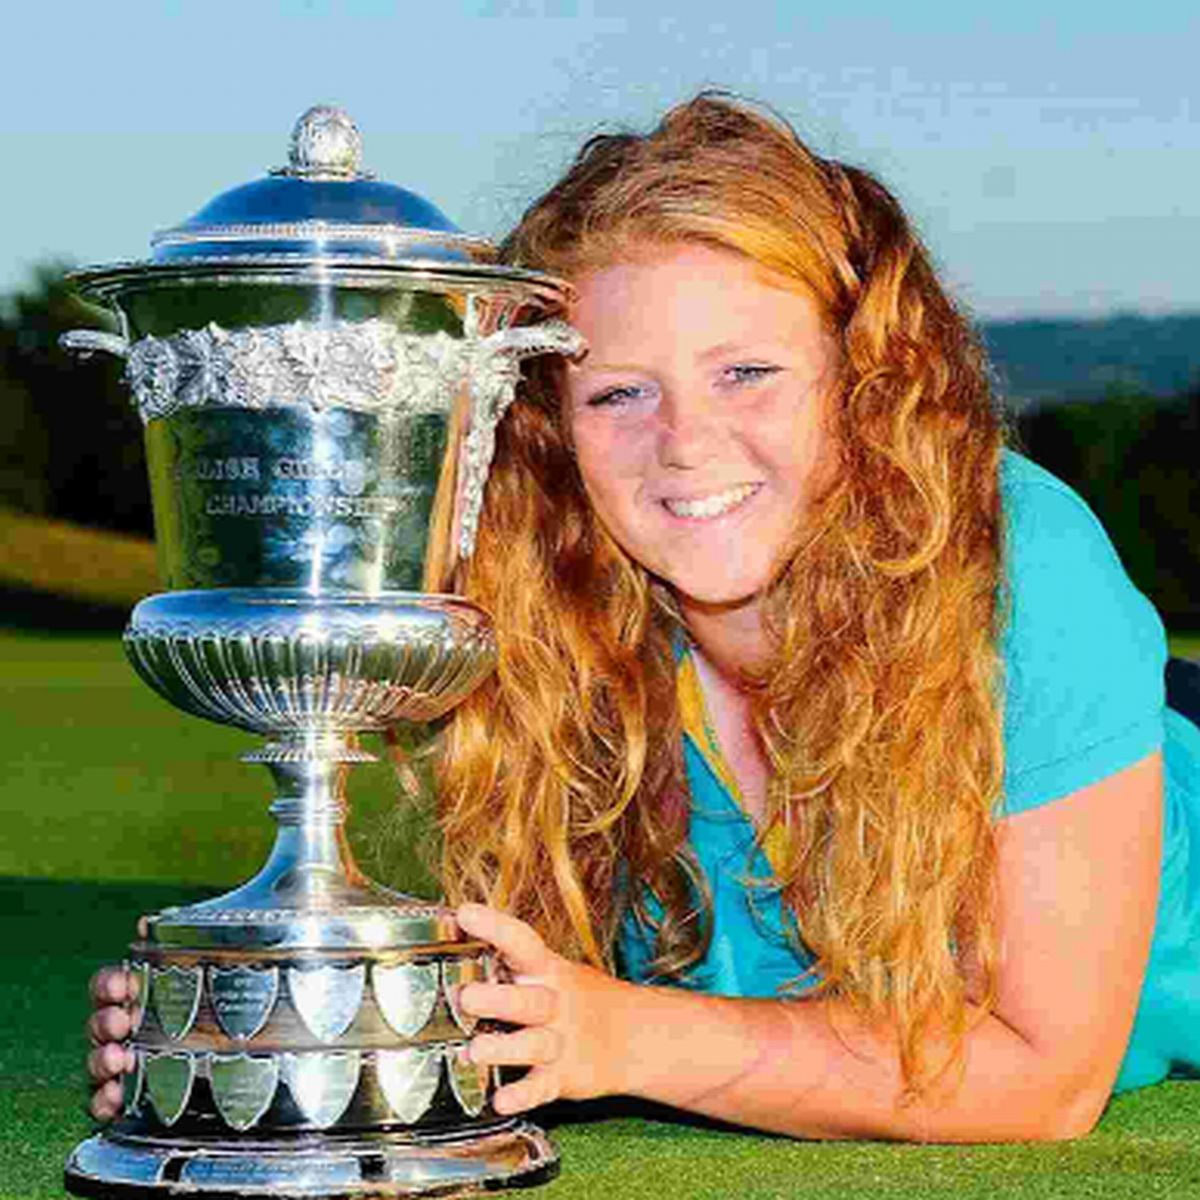 SOPHIE'S PRIZE: Sophie Keech with the England girls' trophy